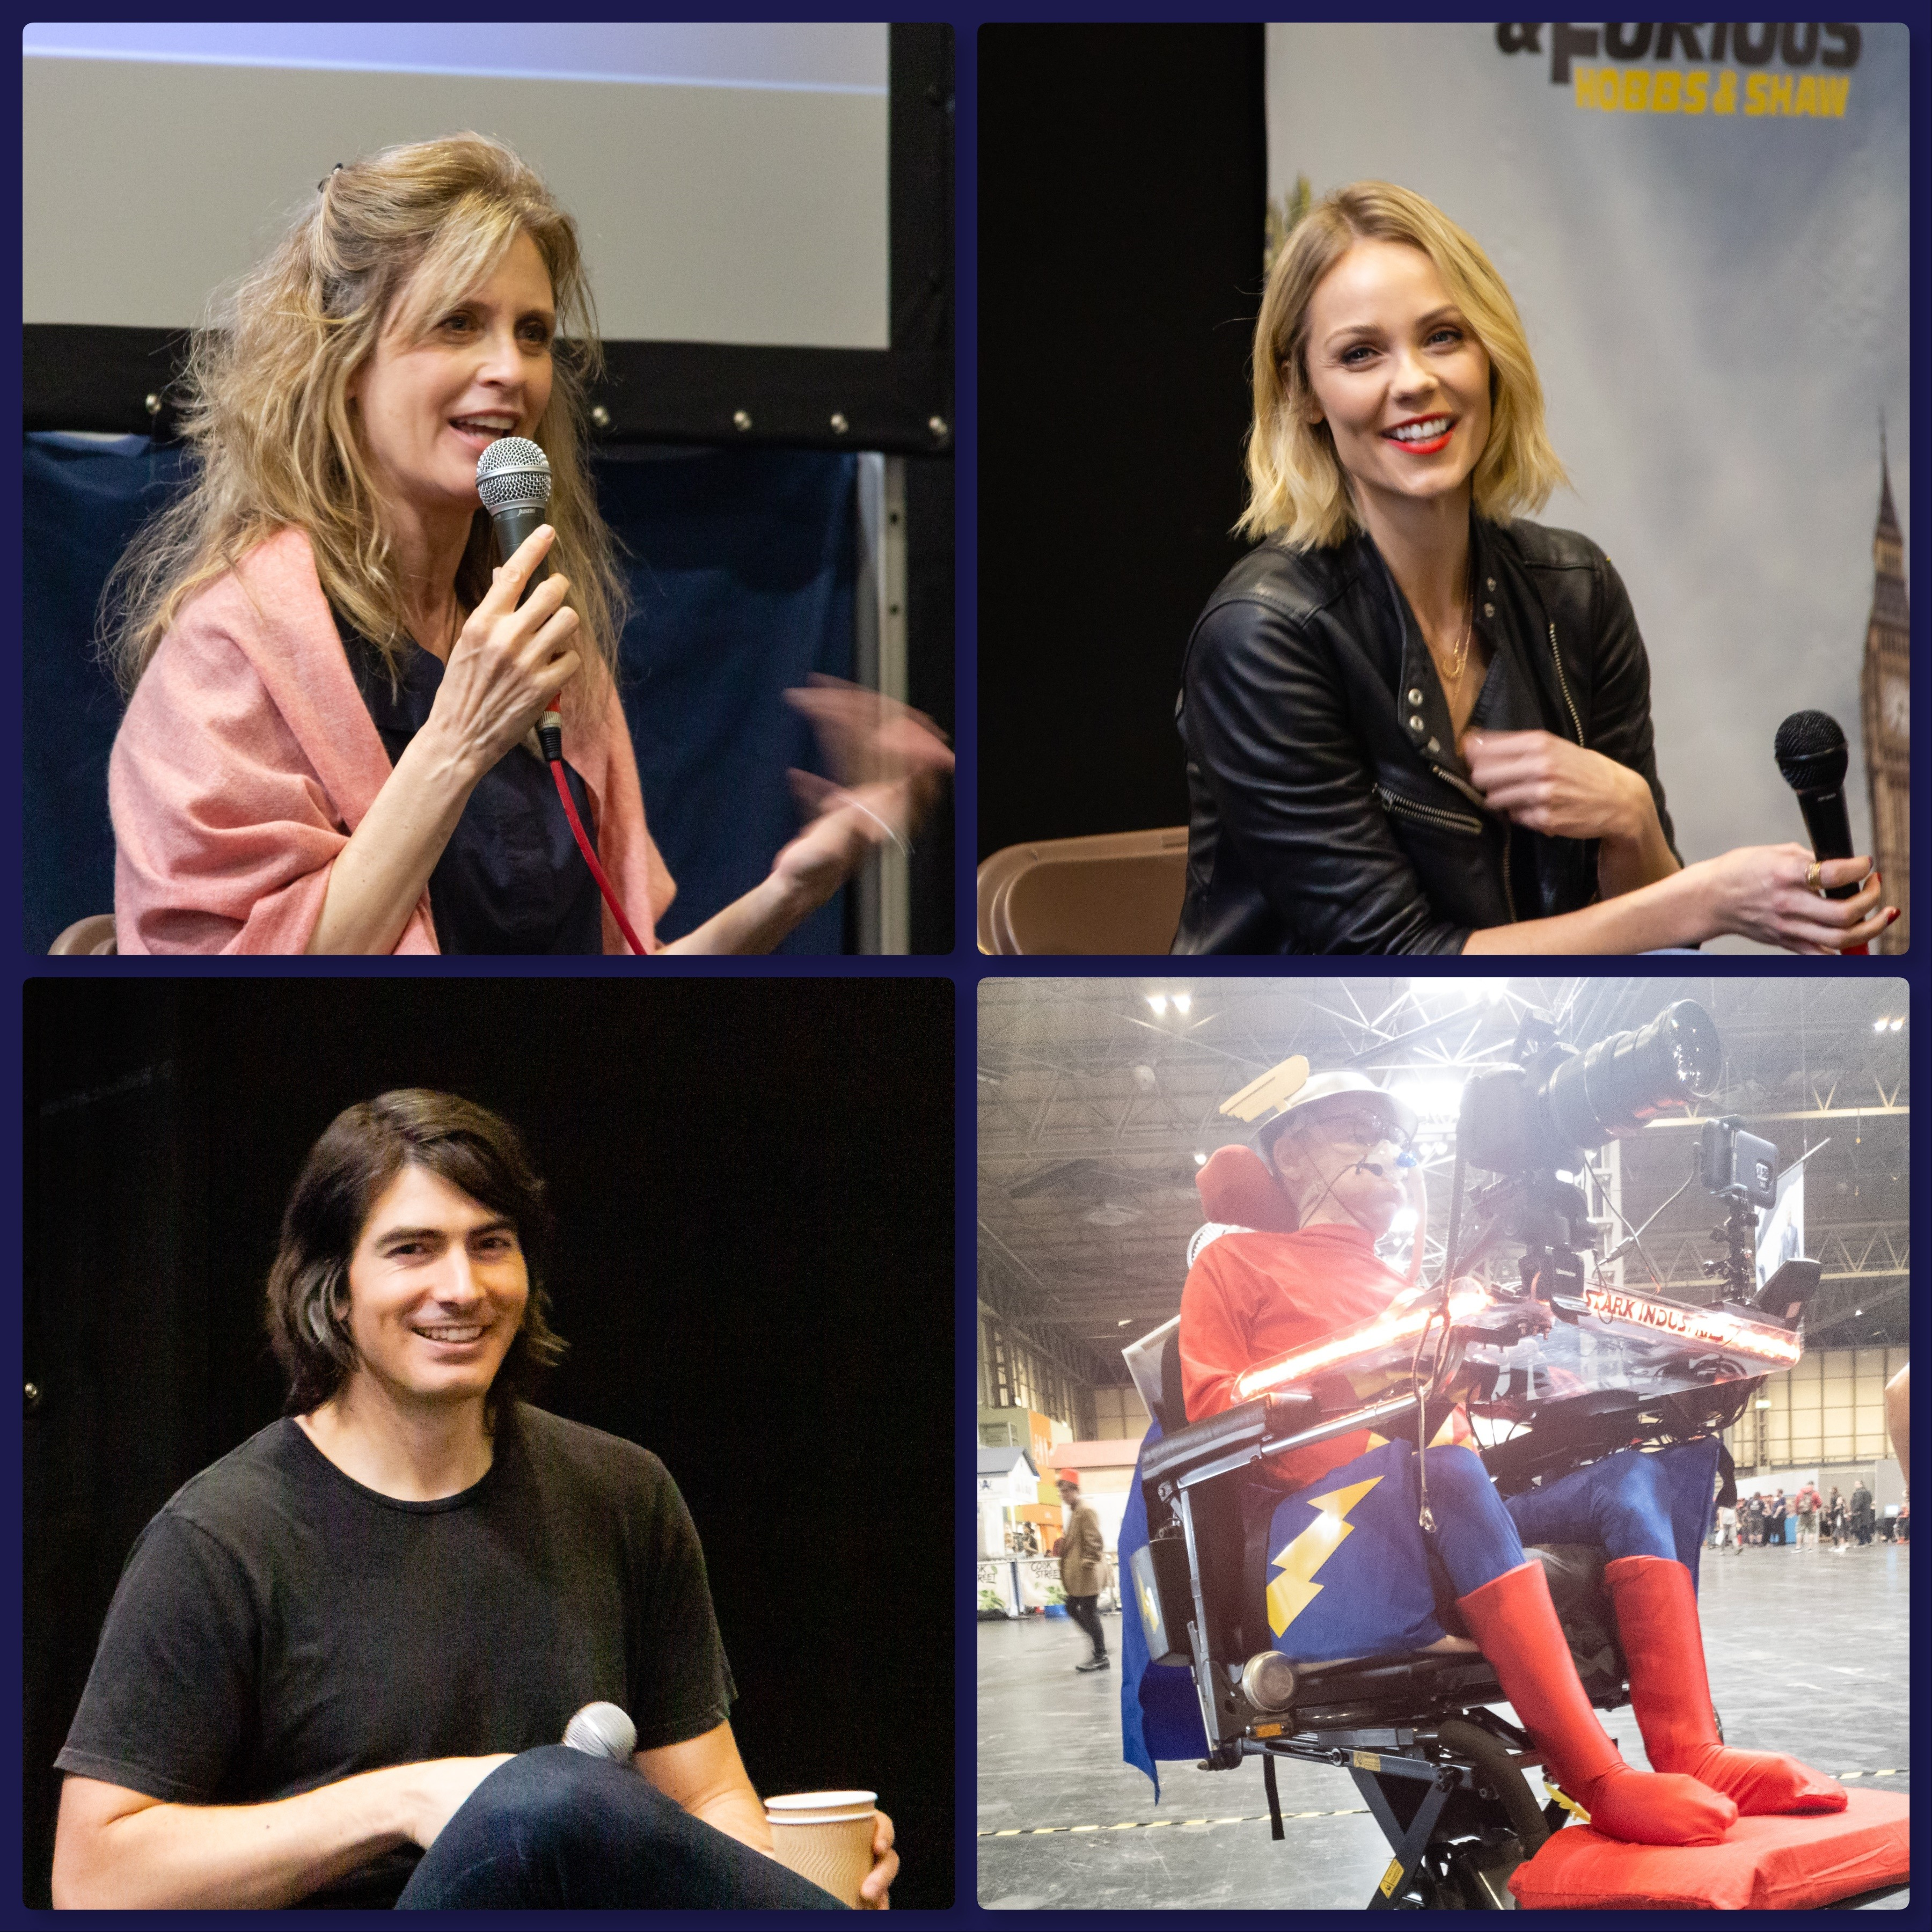 Collage of Helen Slater, Laura Vandervoort, Brandon Routh and Daniel Baker at Collectormania 26